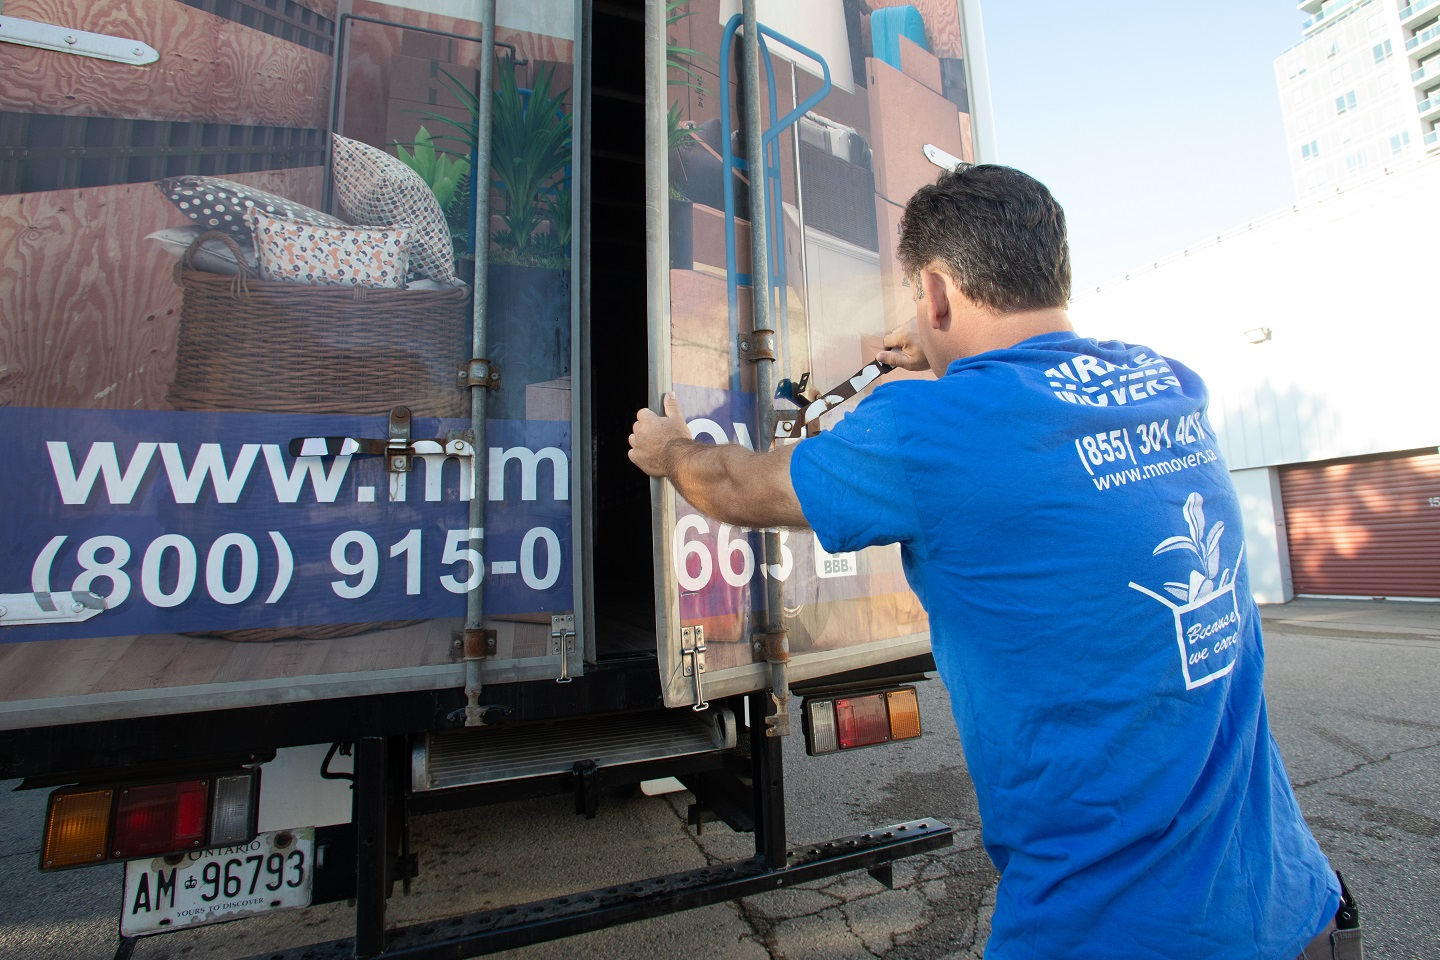 Professional Toronto moving company - Best movers in GTA